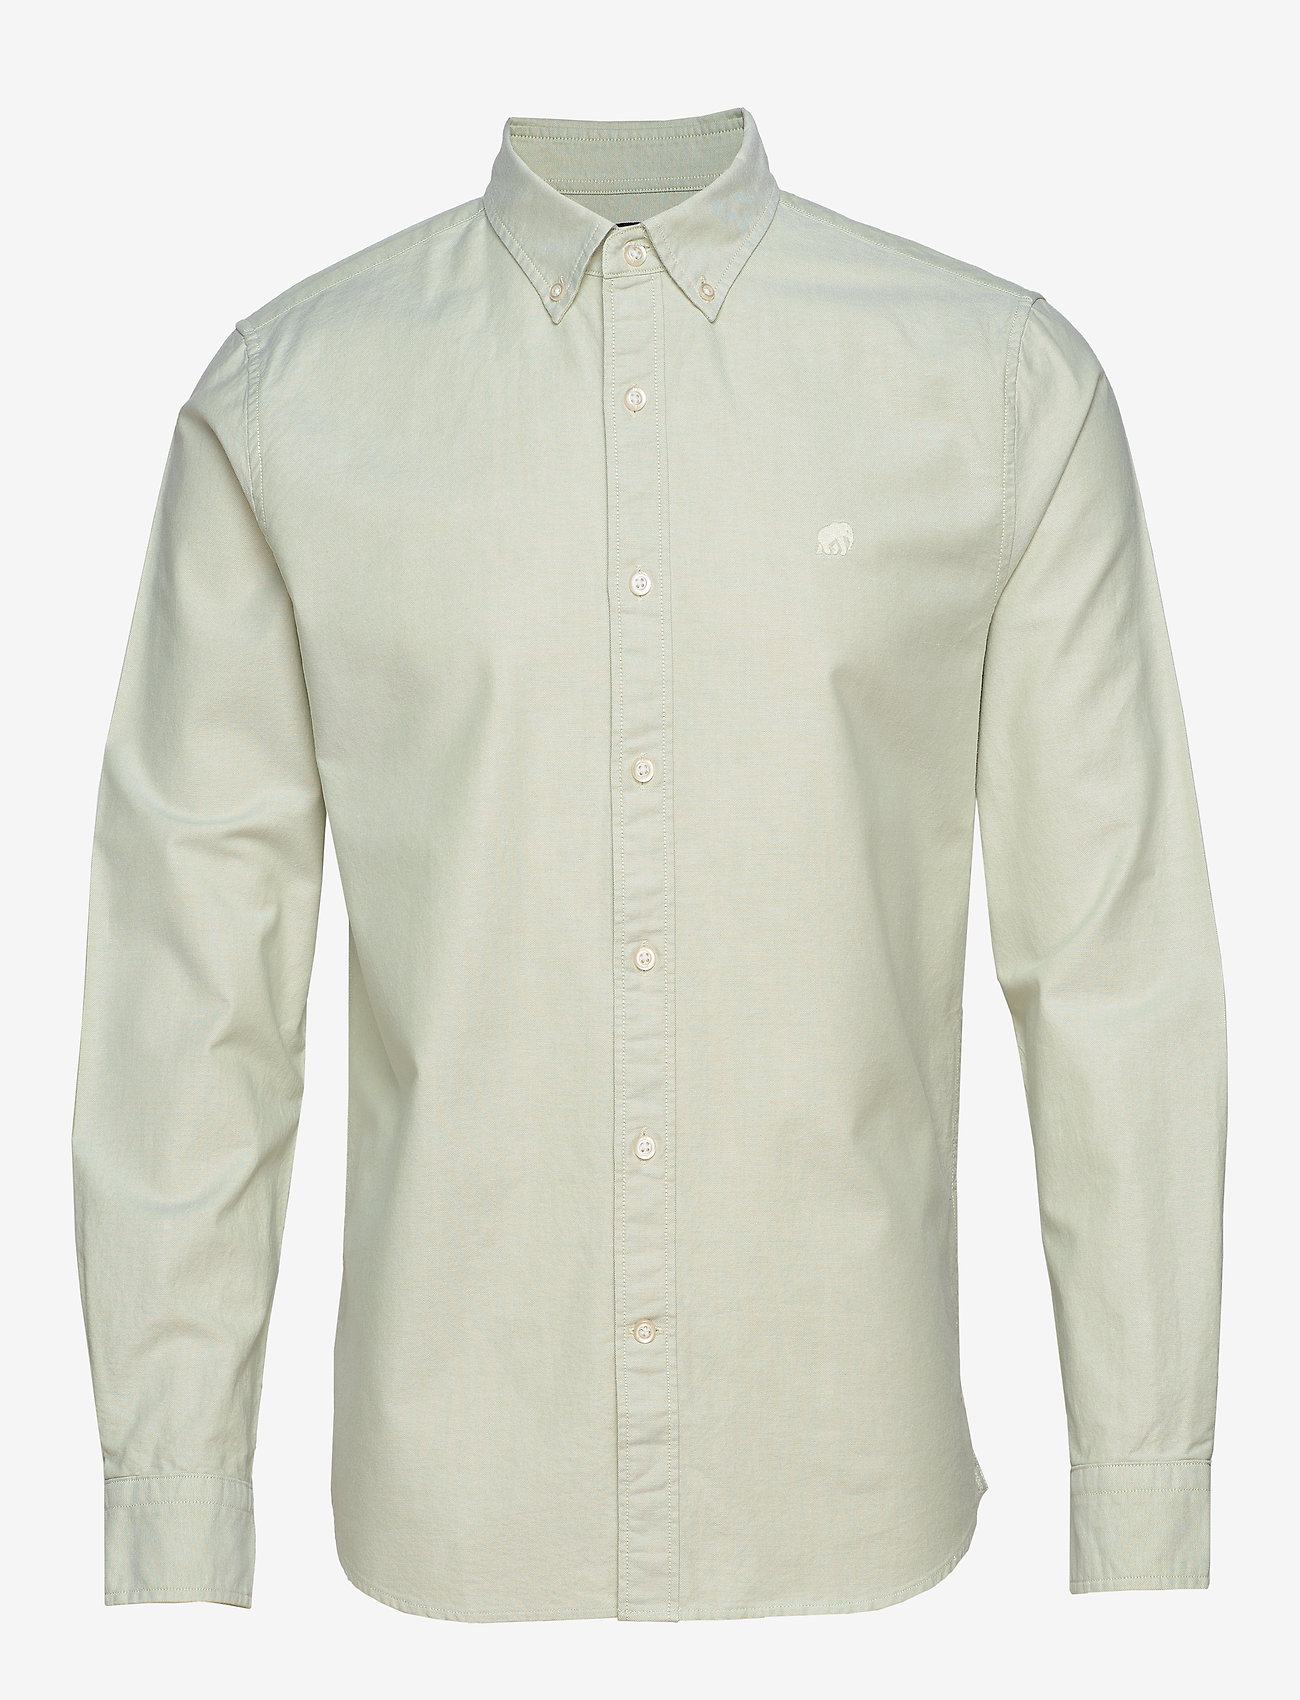 Banana Republic - I UT LOGO OXFORD SOLID - basic shirts - mint - 0